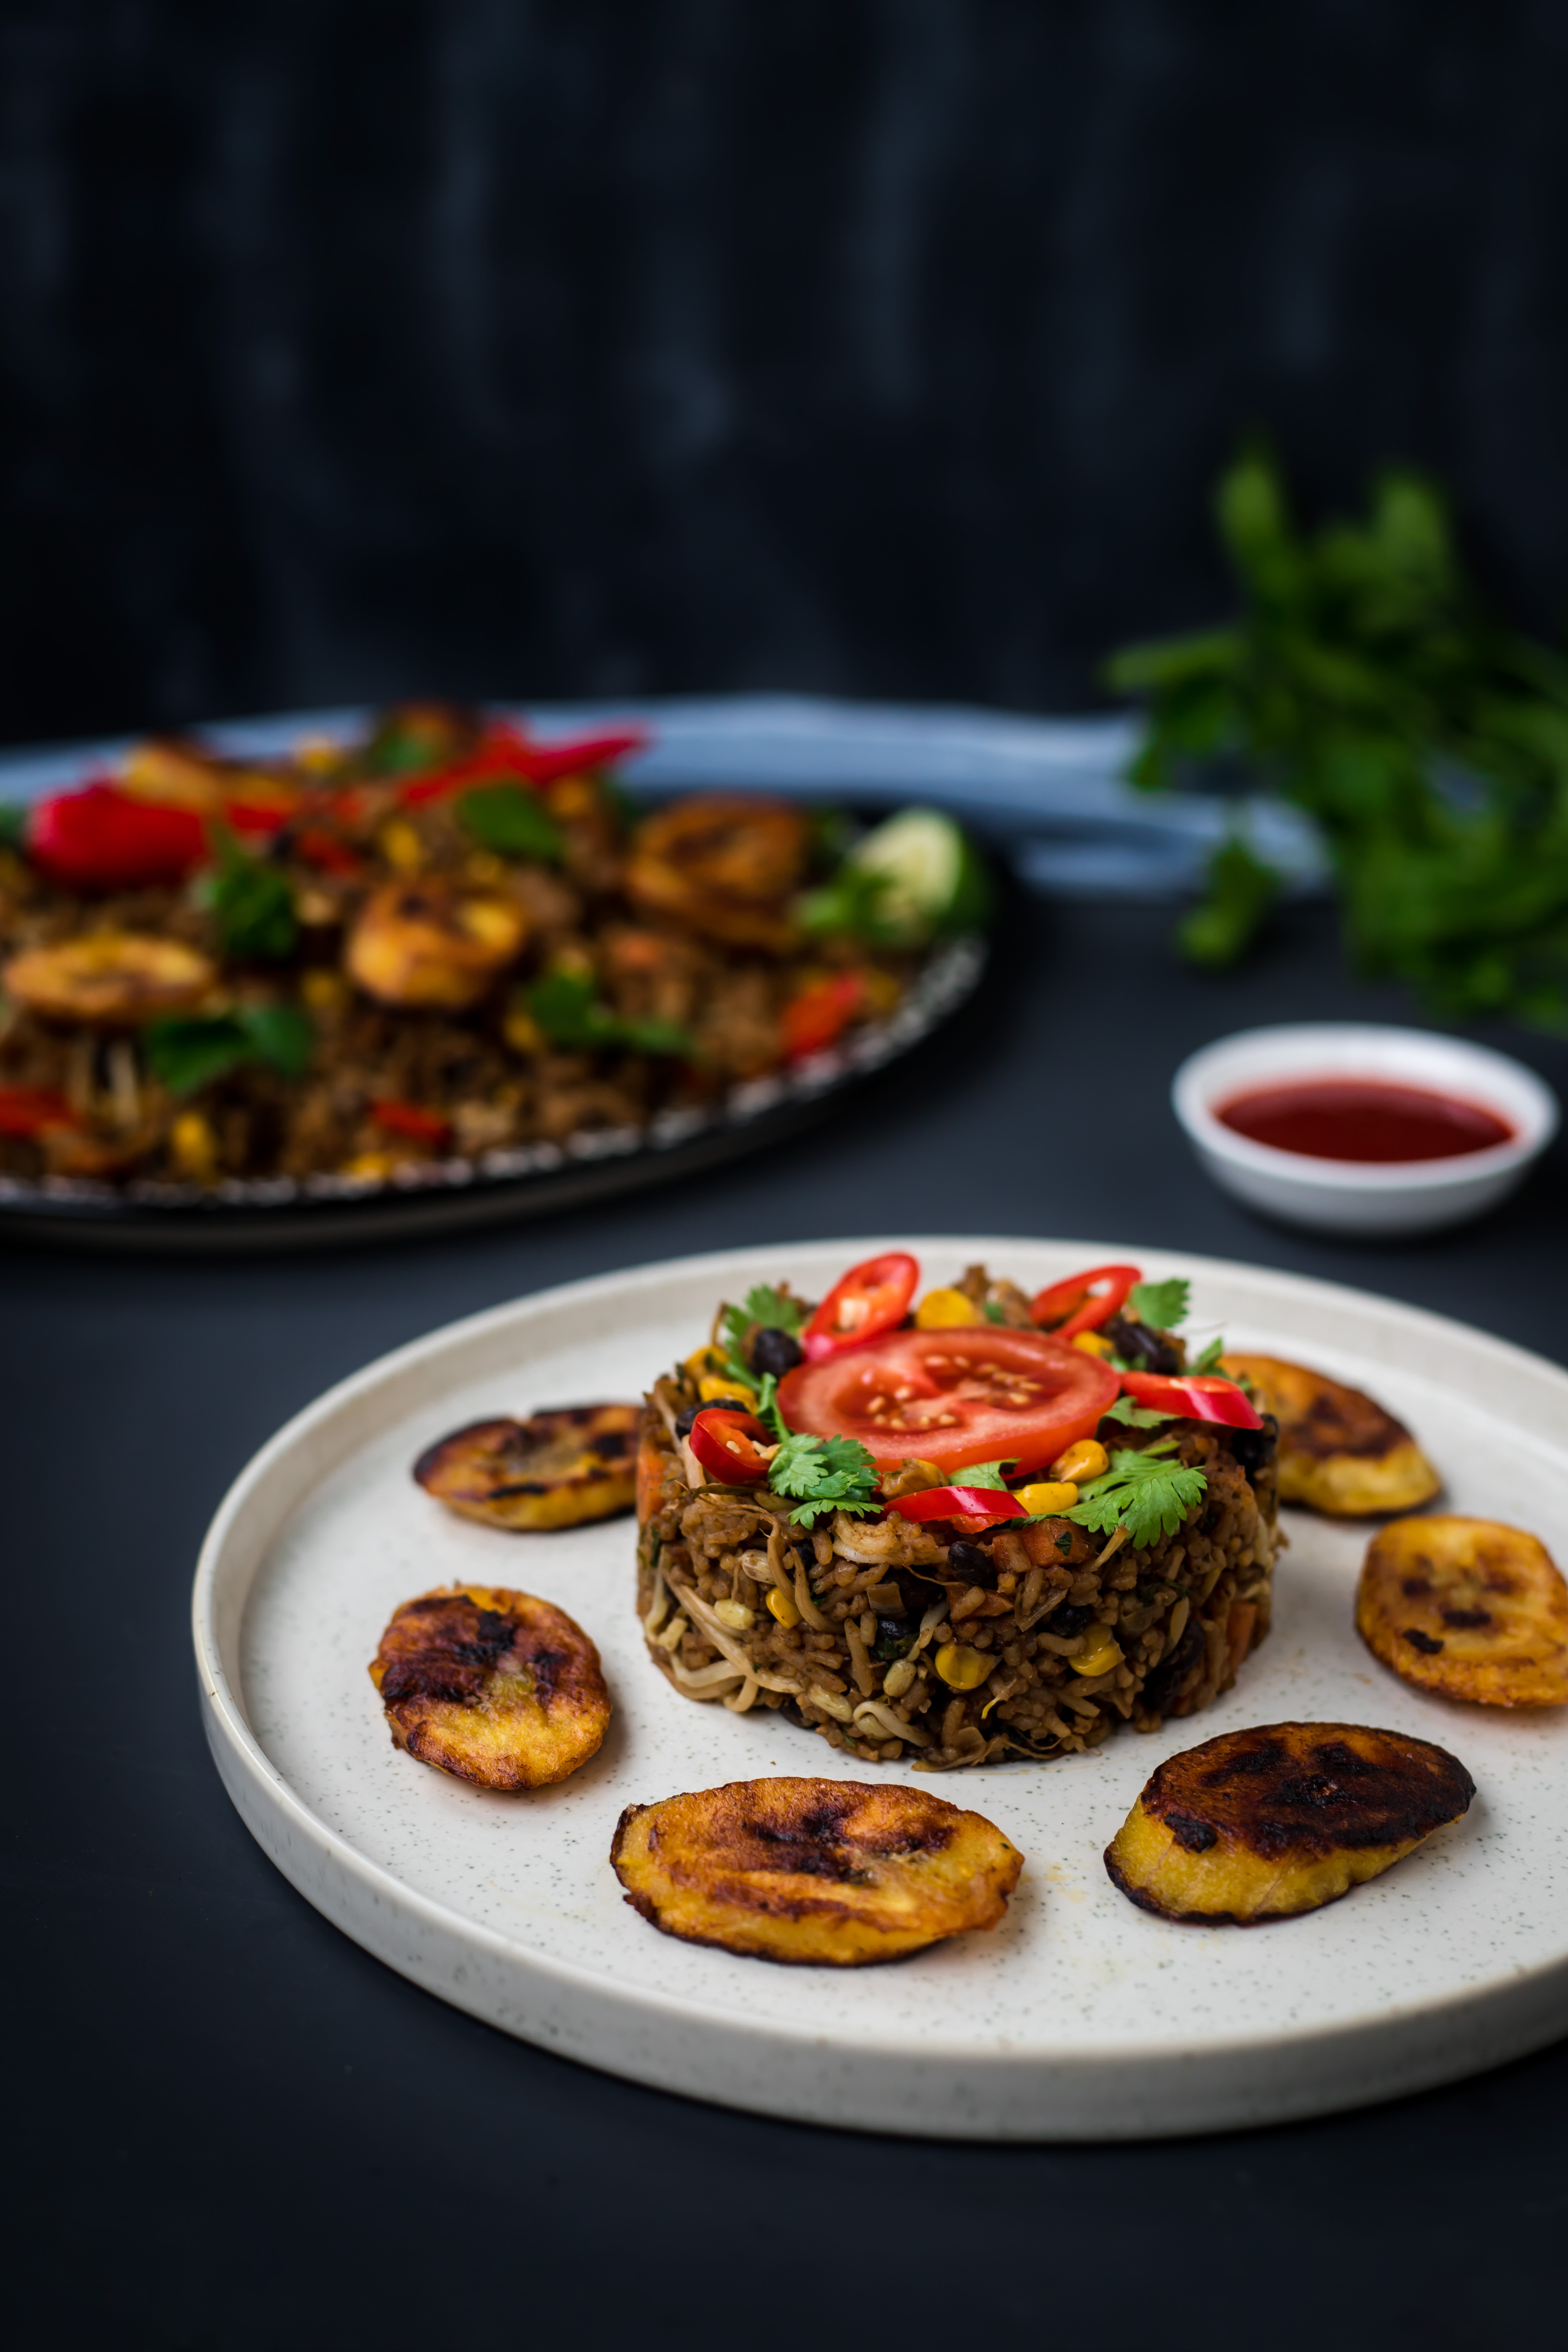 Fried rice high protein as a kid fried rice dishes were some of my favorites i always went back for seconds whenever we went to surinamese parties there would always be ccuart Choice Image